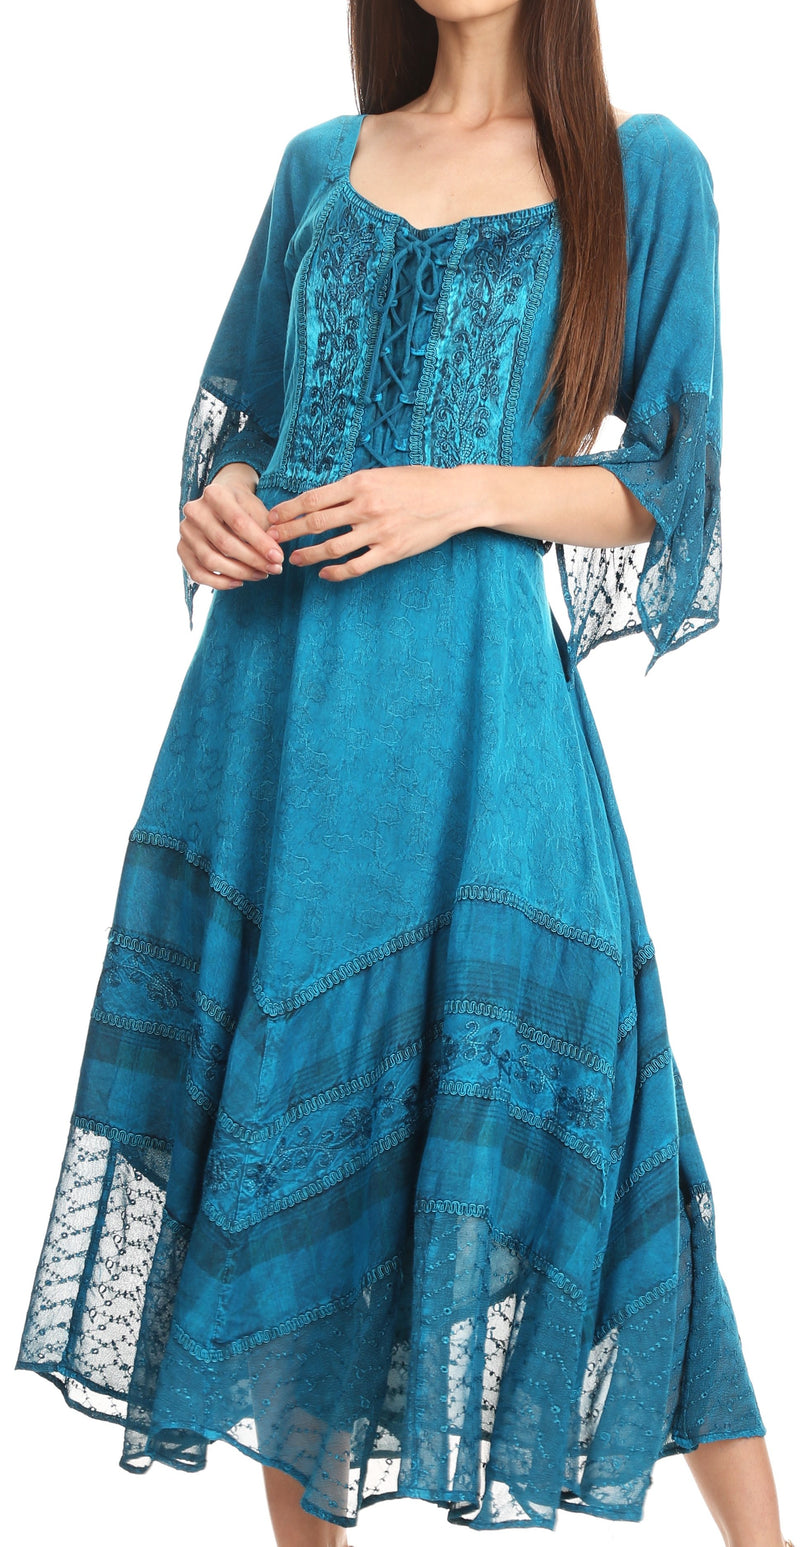 Sakkas Bexley Scoop Neck Bell Sleeve Bohemian Gypsy Embroidered Corset Dress